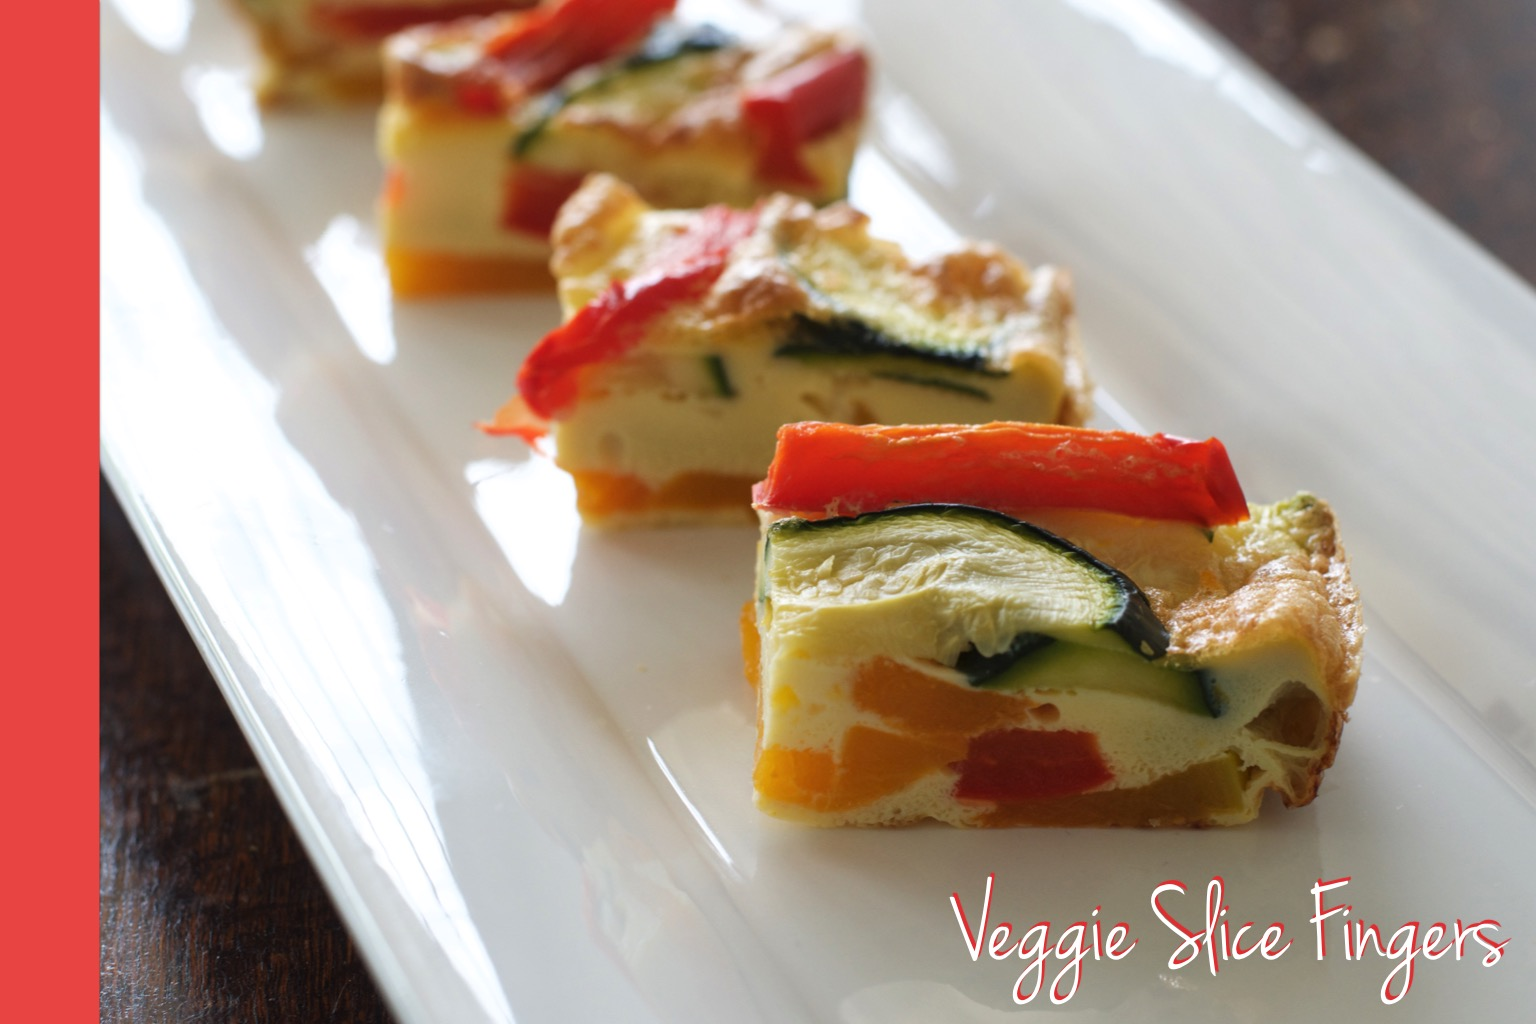 Thermomix Veggie Slice Fingers